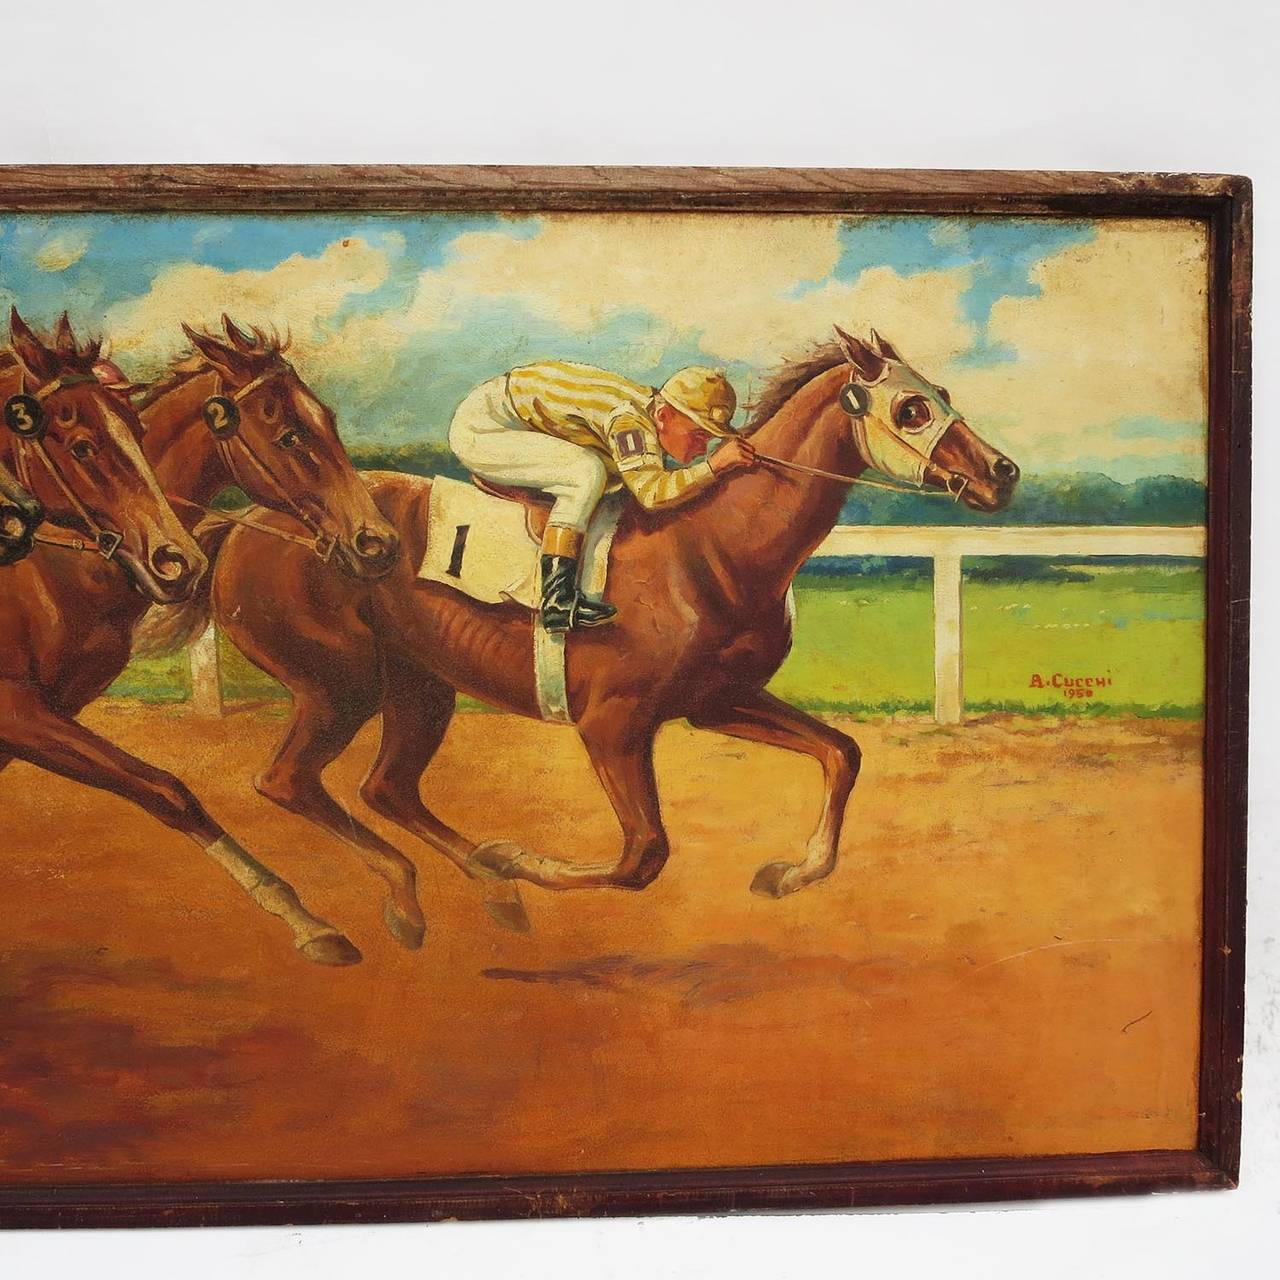 Starting gate oil painting by anthony j cucchi 1950 at for How to start oil painting